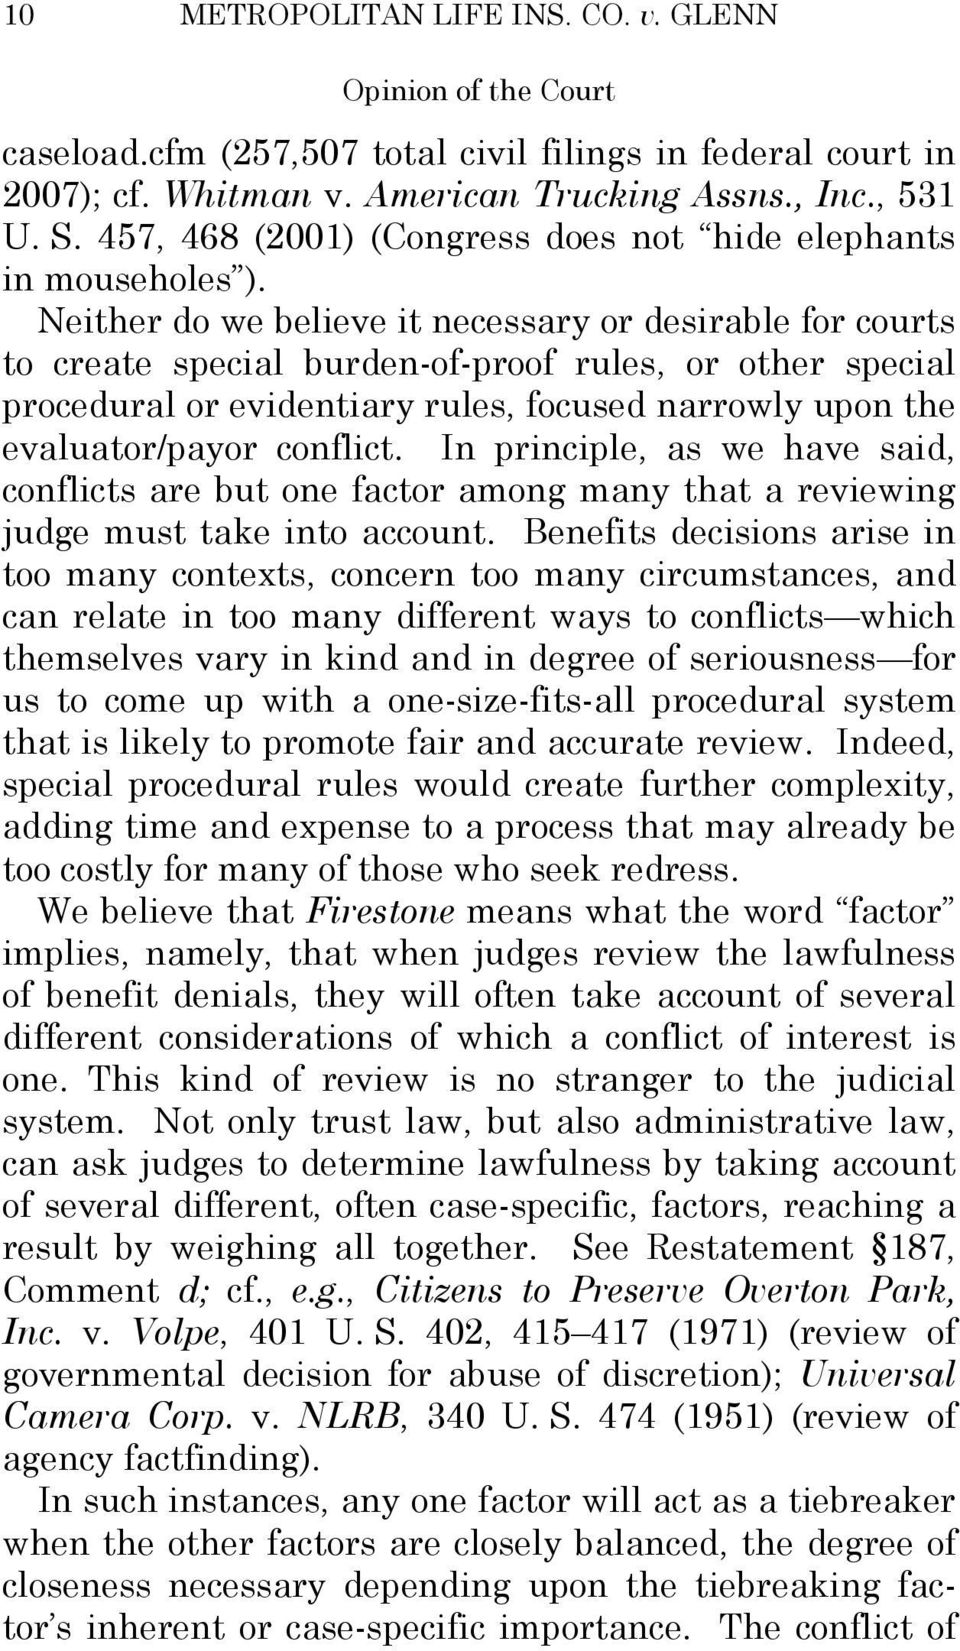 Neither do we believe it necessary or desirable for courts to create special burden-of-proof rules, or other special procedural or evidentiary rules, focused narrowly upon the evaluator/payor